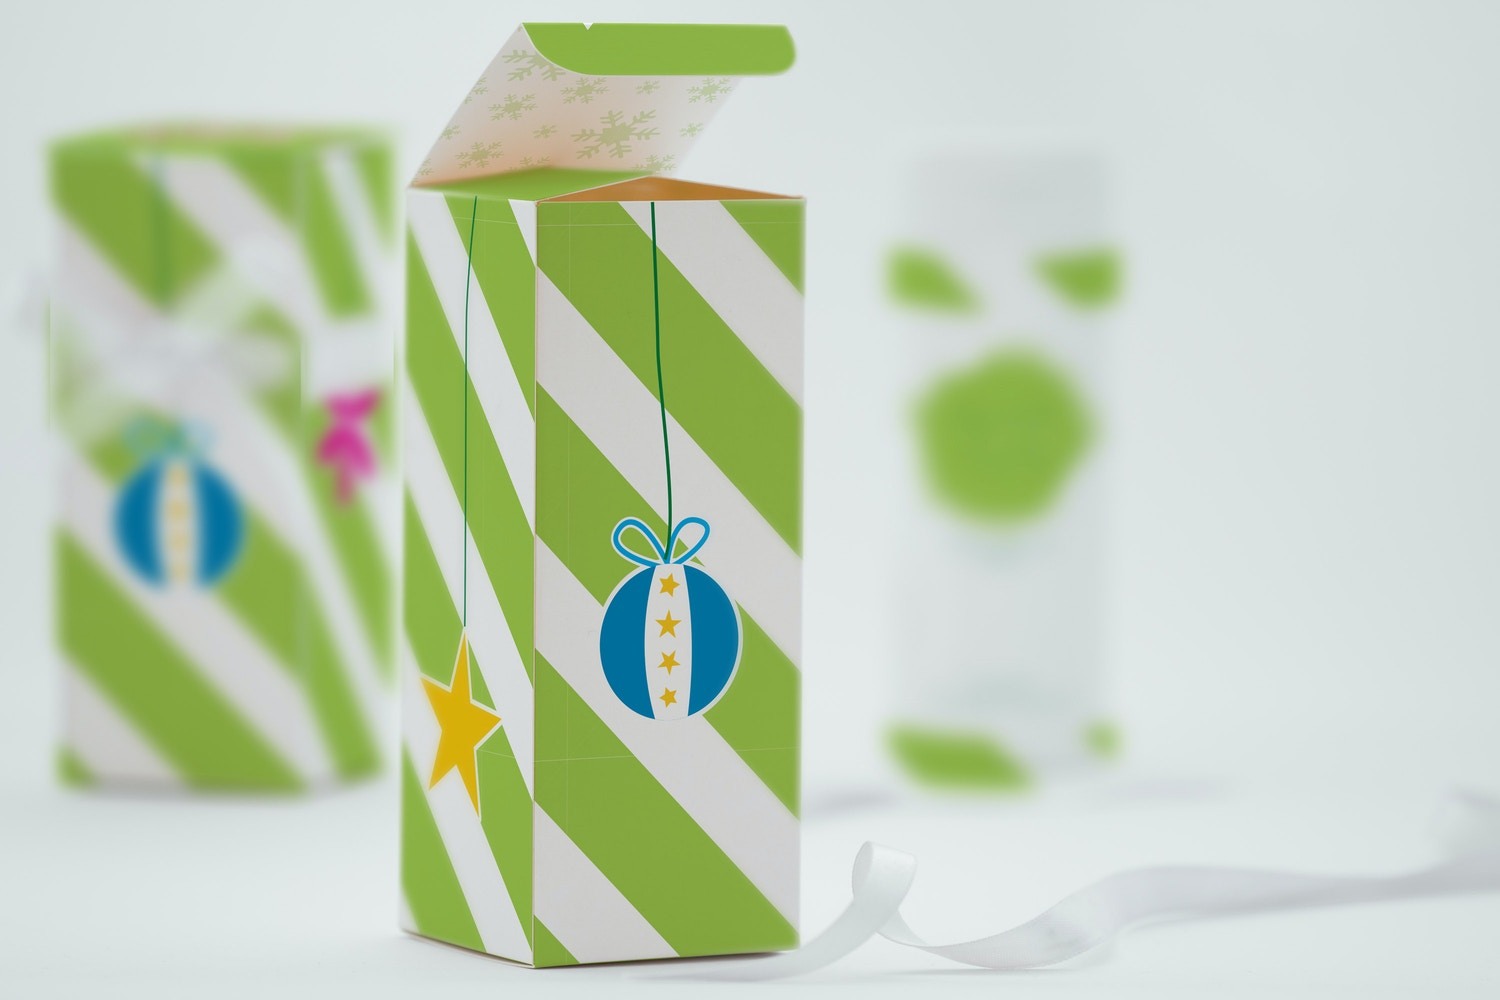 Tall Gift Box Mockup 03 by Ktyellow  on Original Mockups